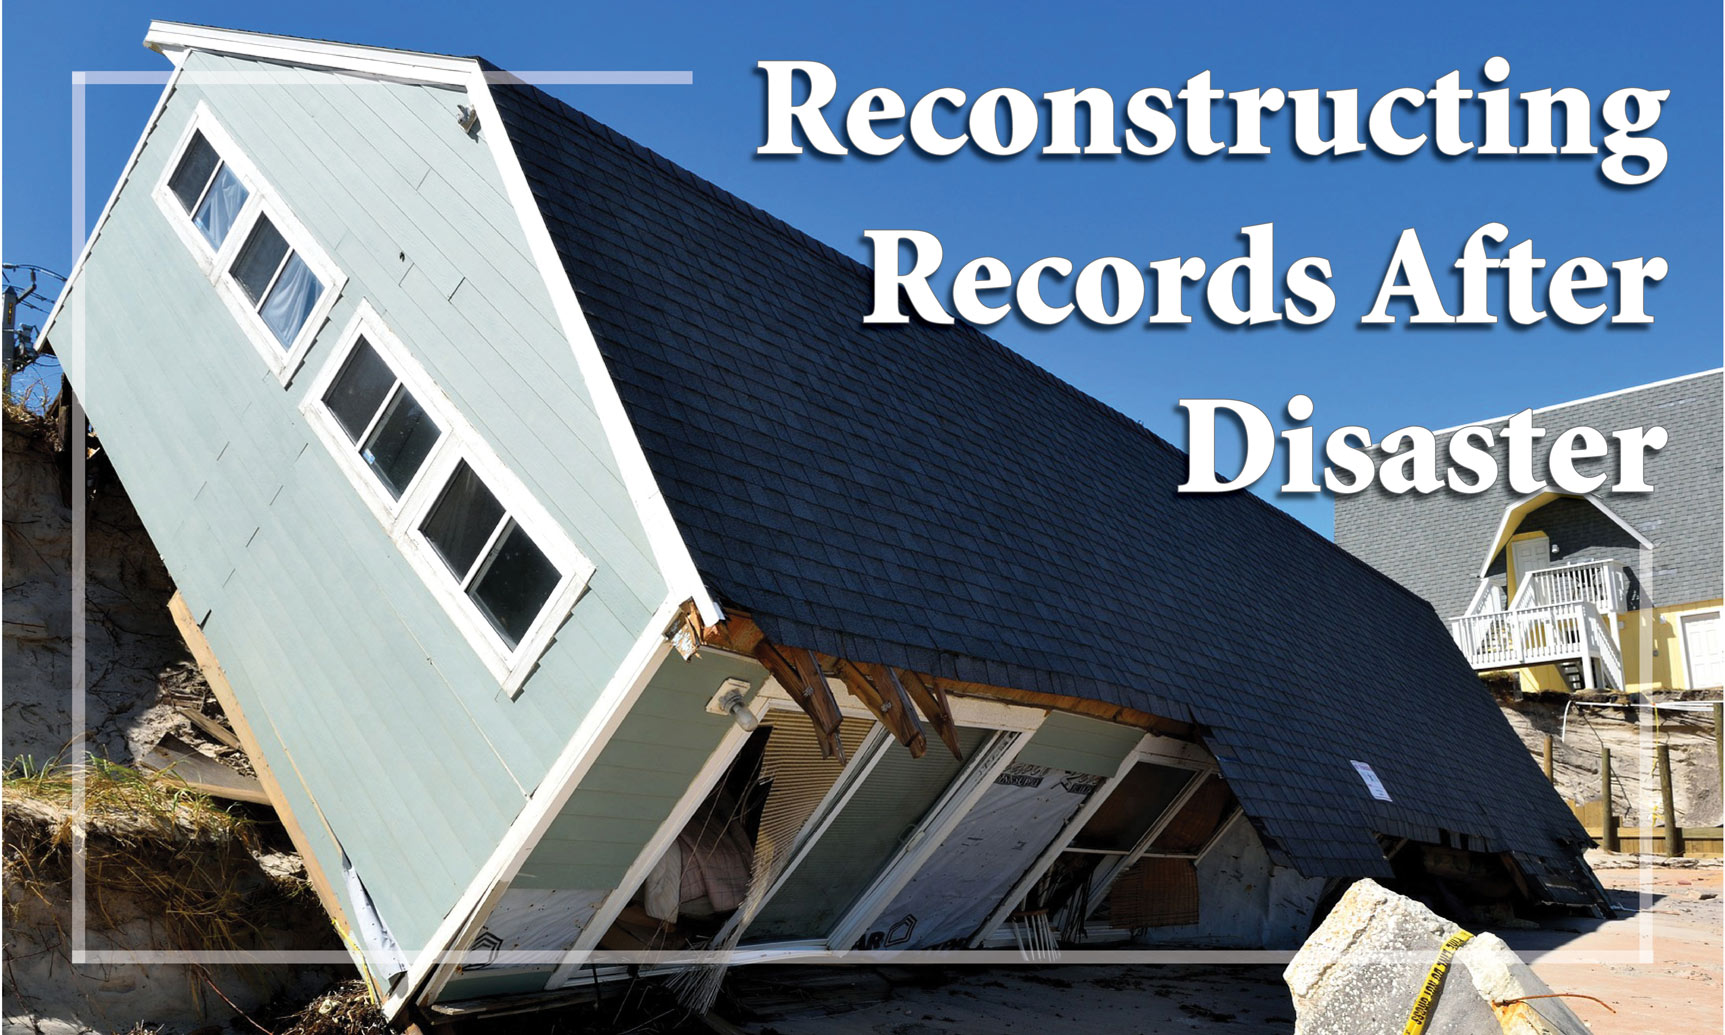 Records after a Disaster